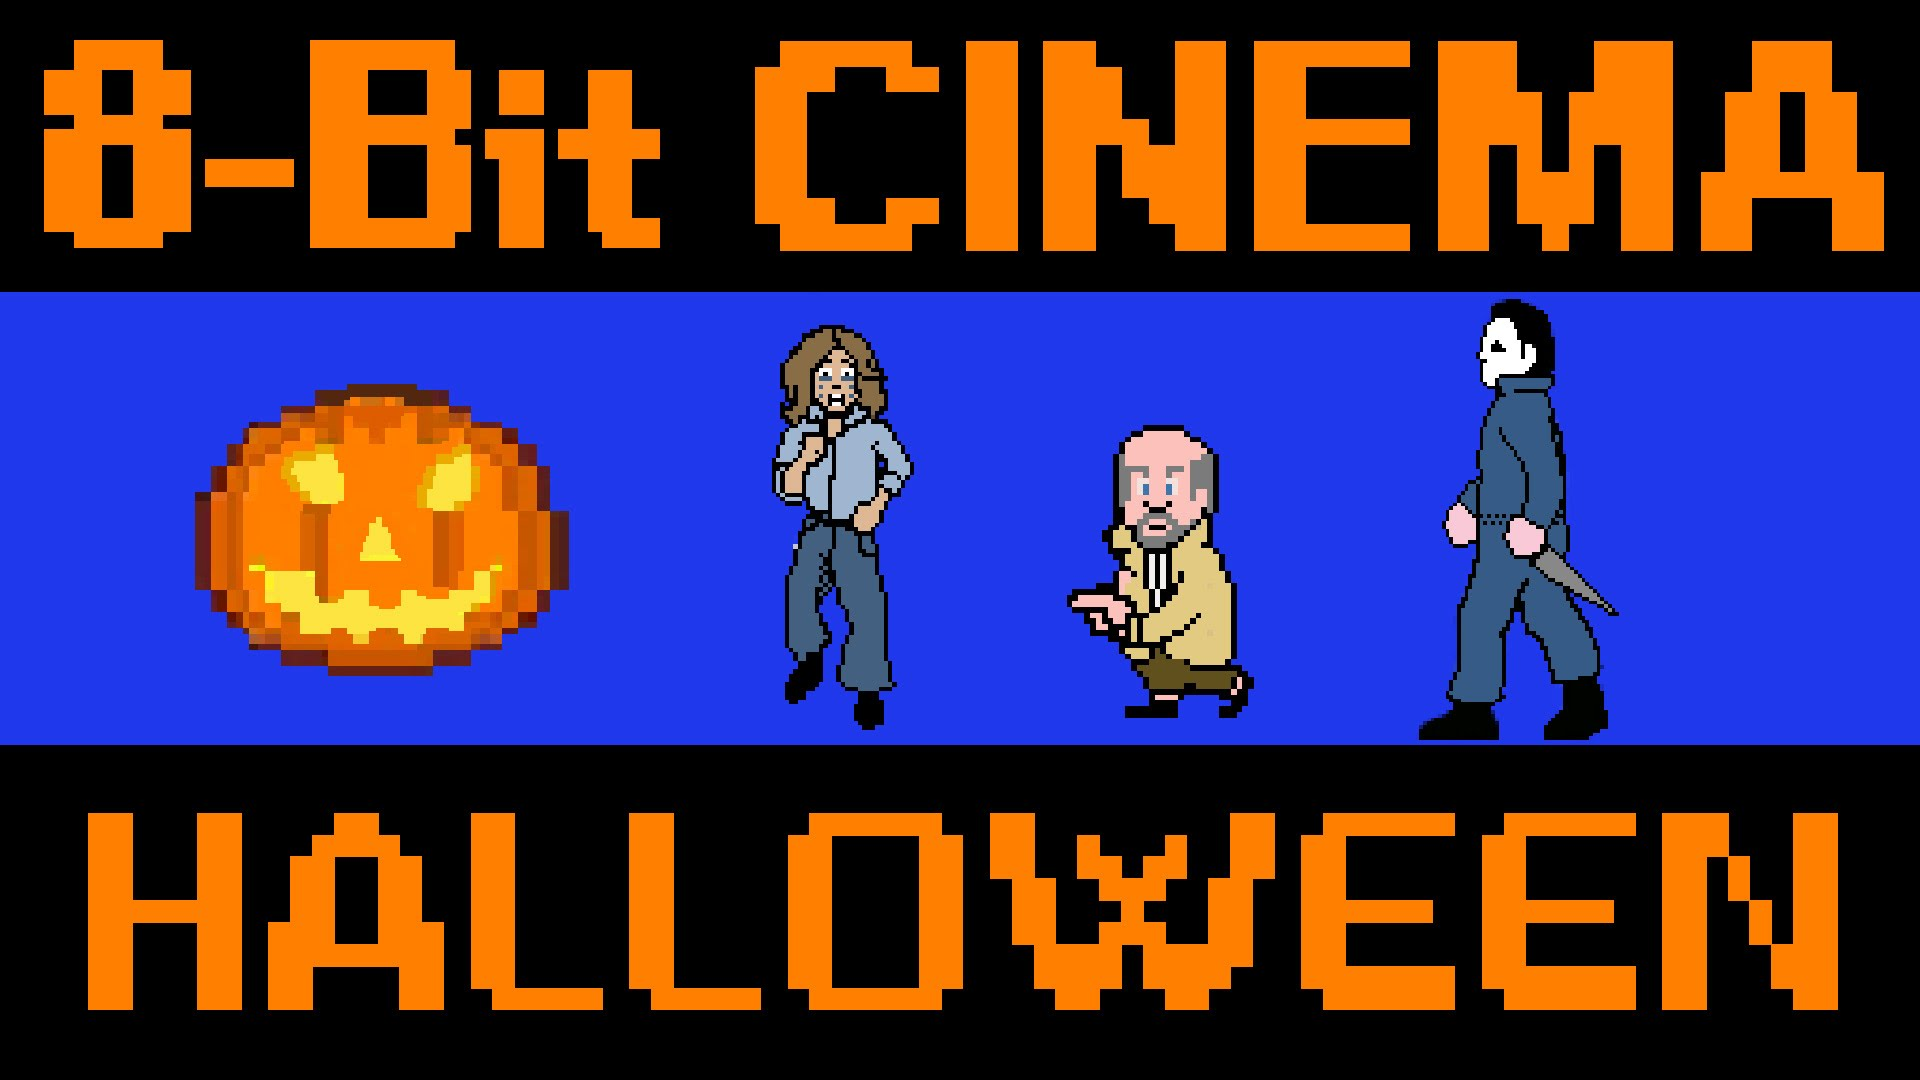 the horror movie halloween retold as an old school 8 bit animated video game